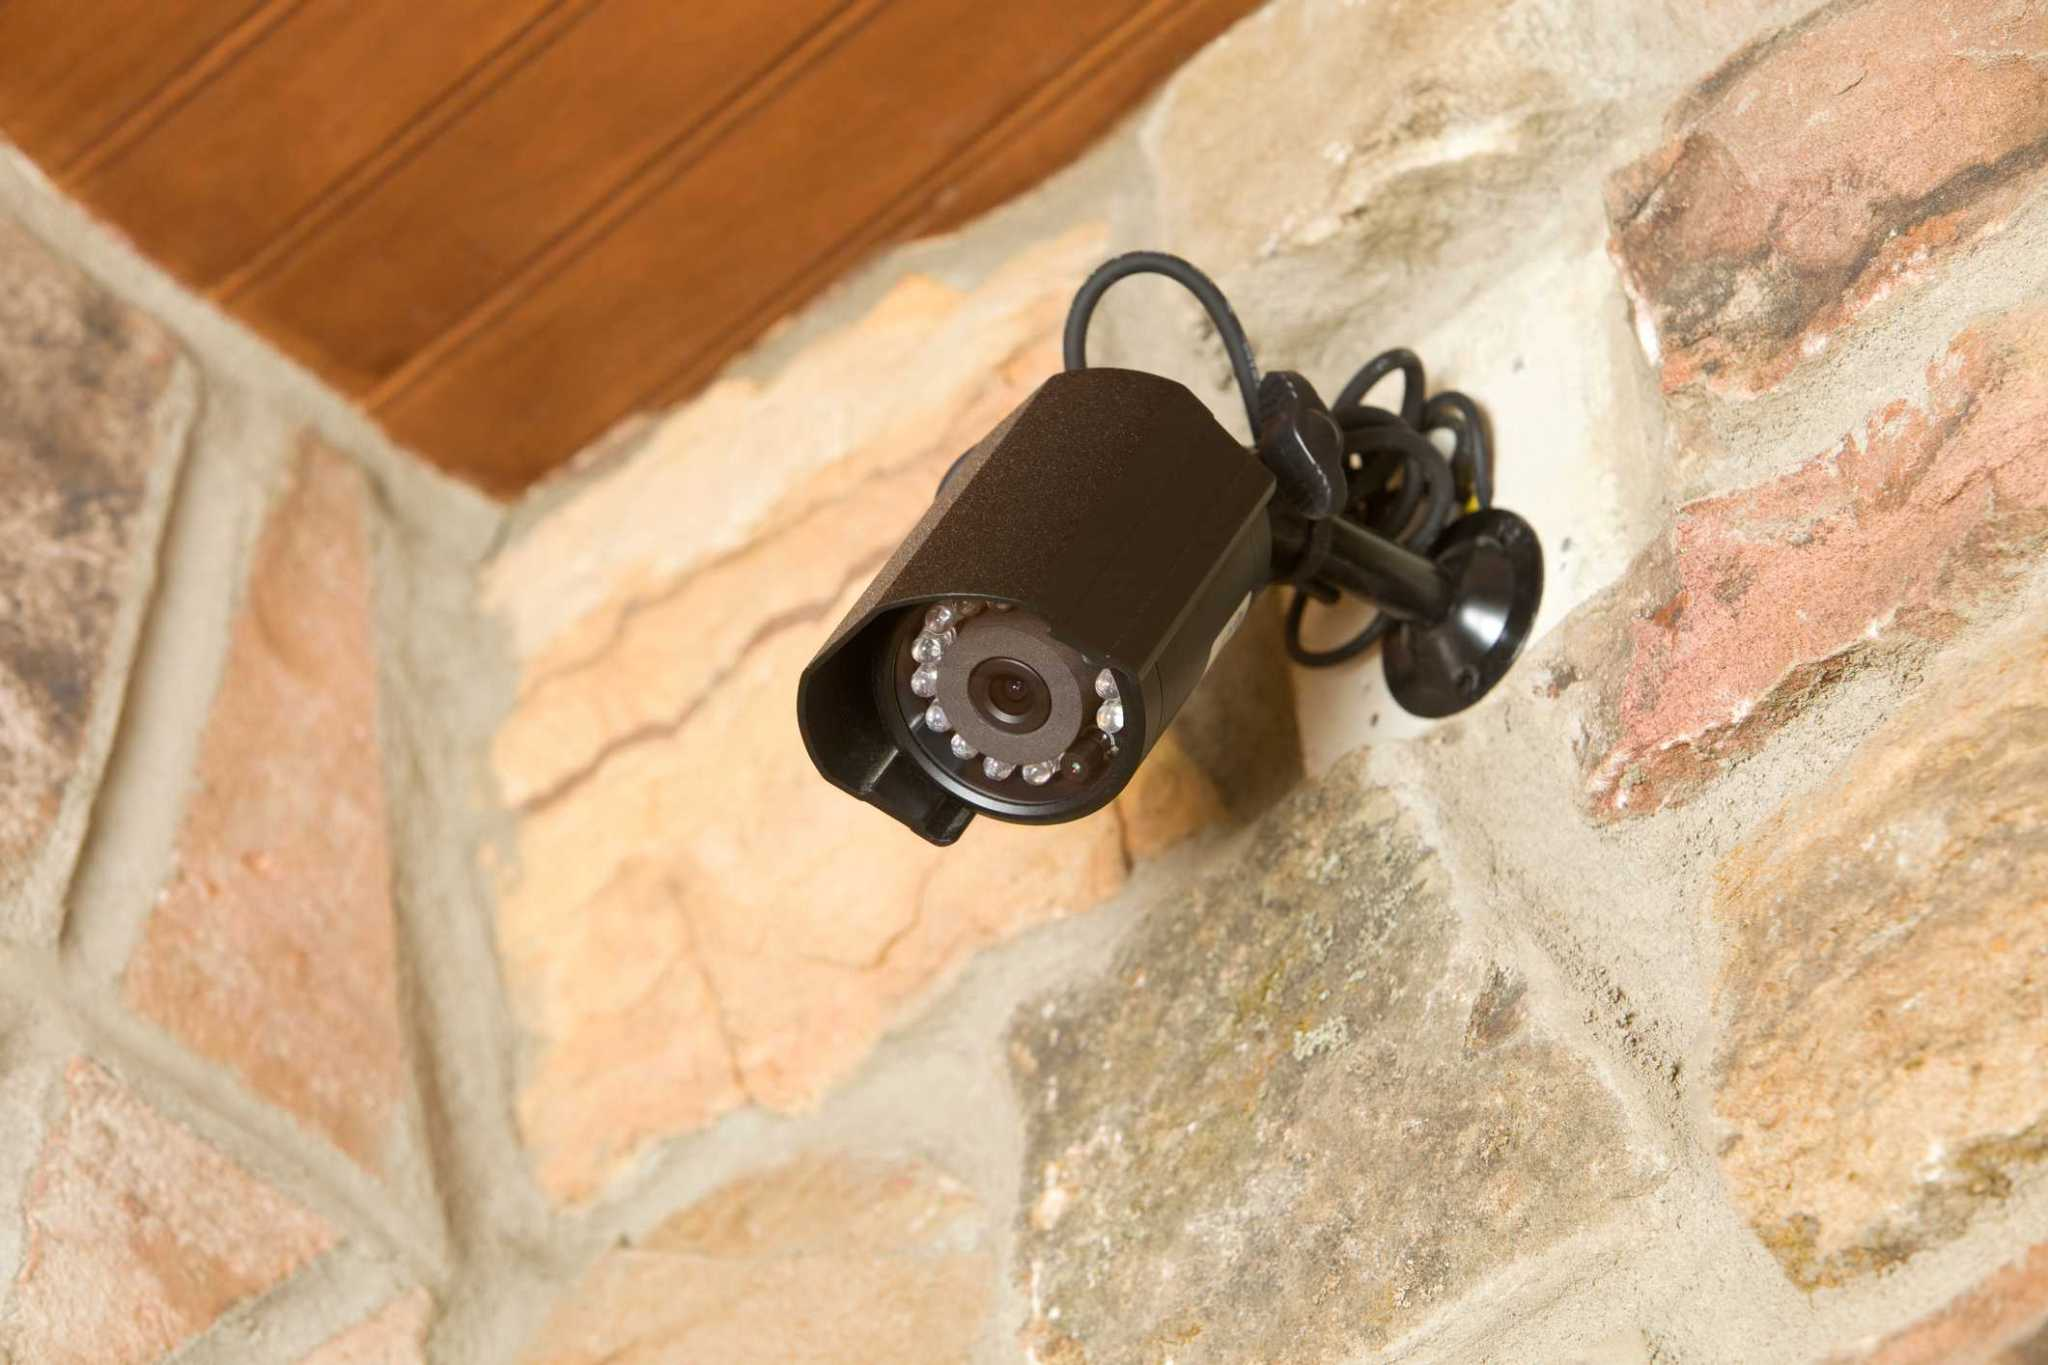 Security Systems in Idaho Falls